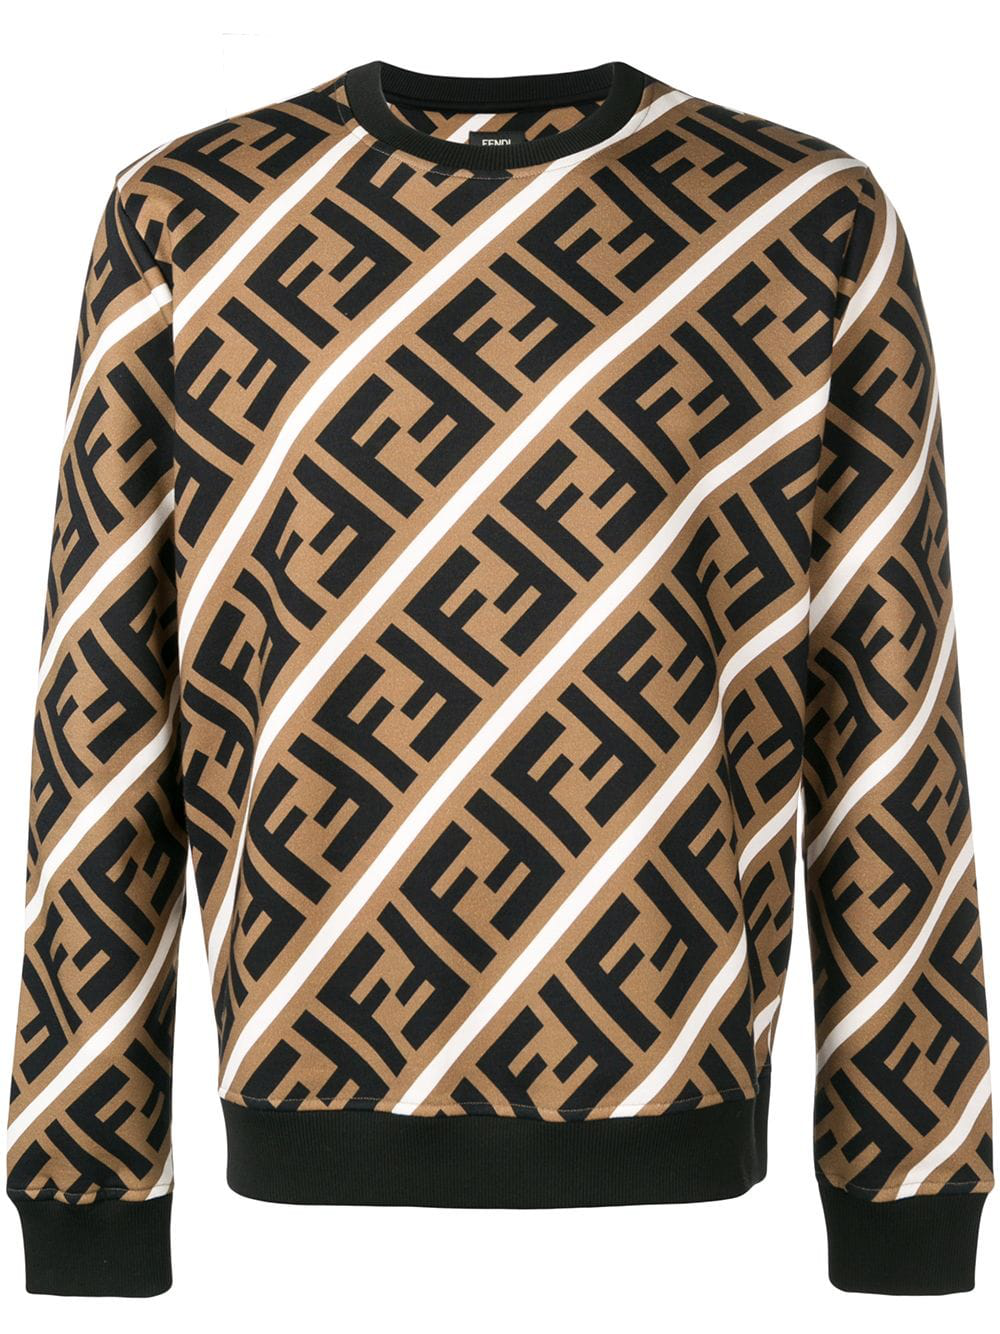 920189a8 Fendi Printed Ff Logo Sweatshirt - Brown | ModeSens